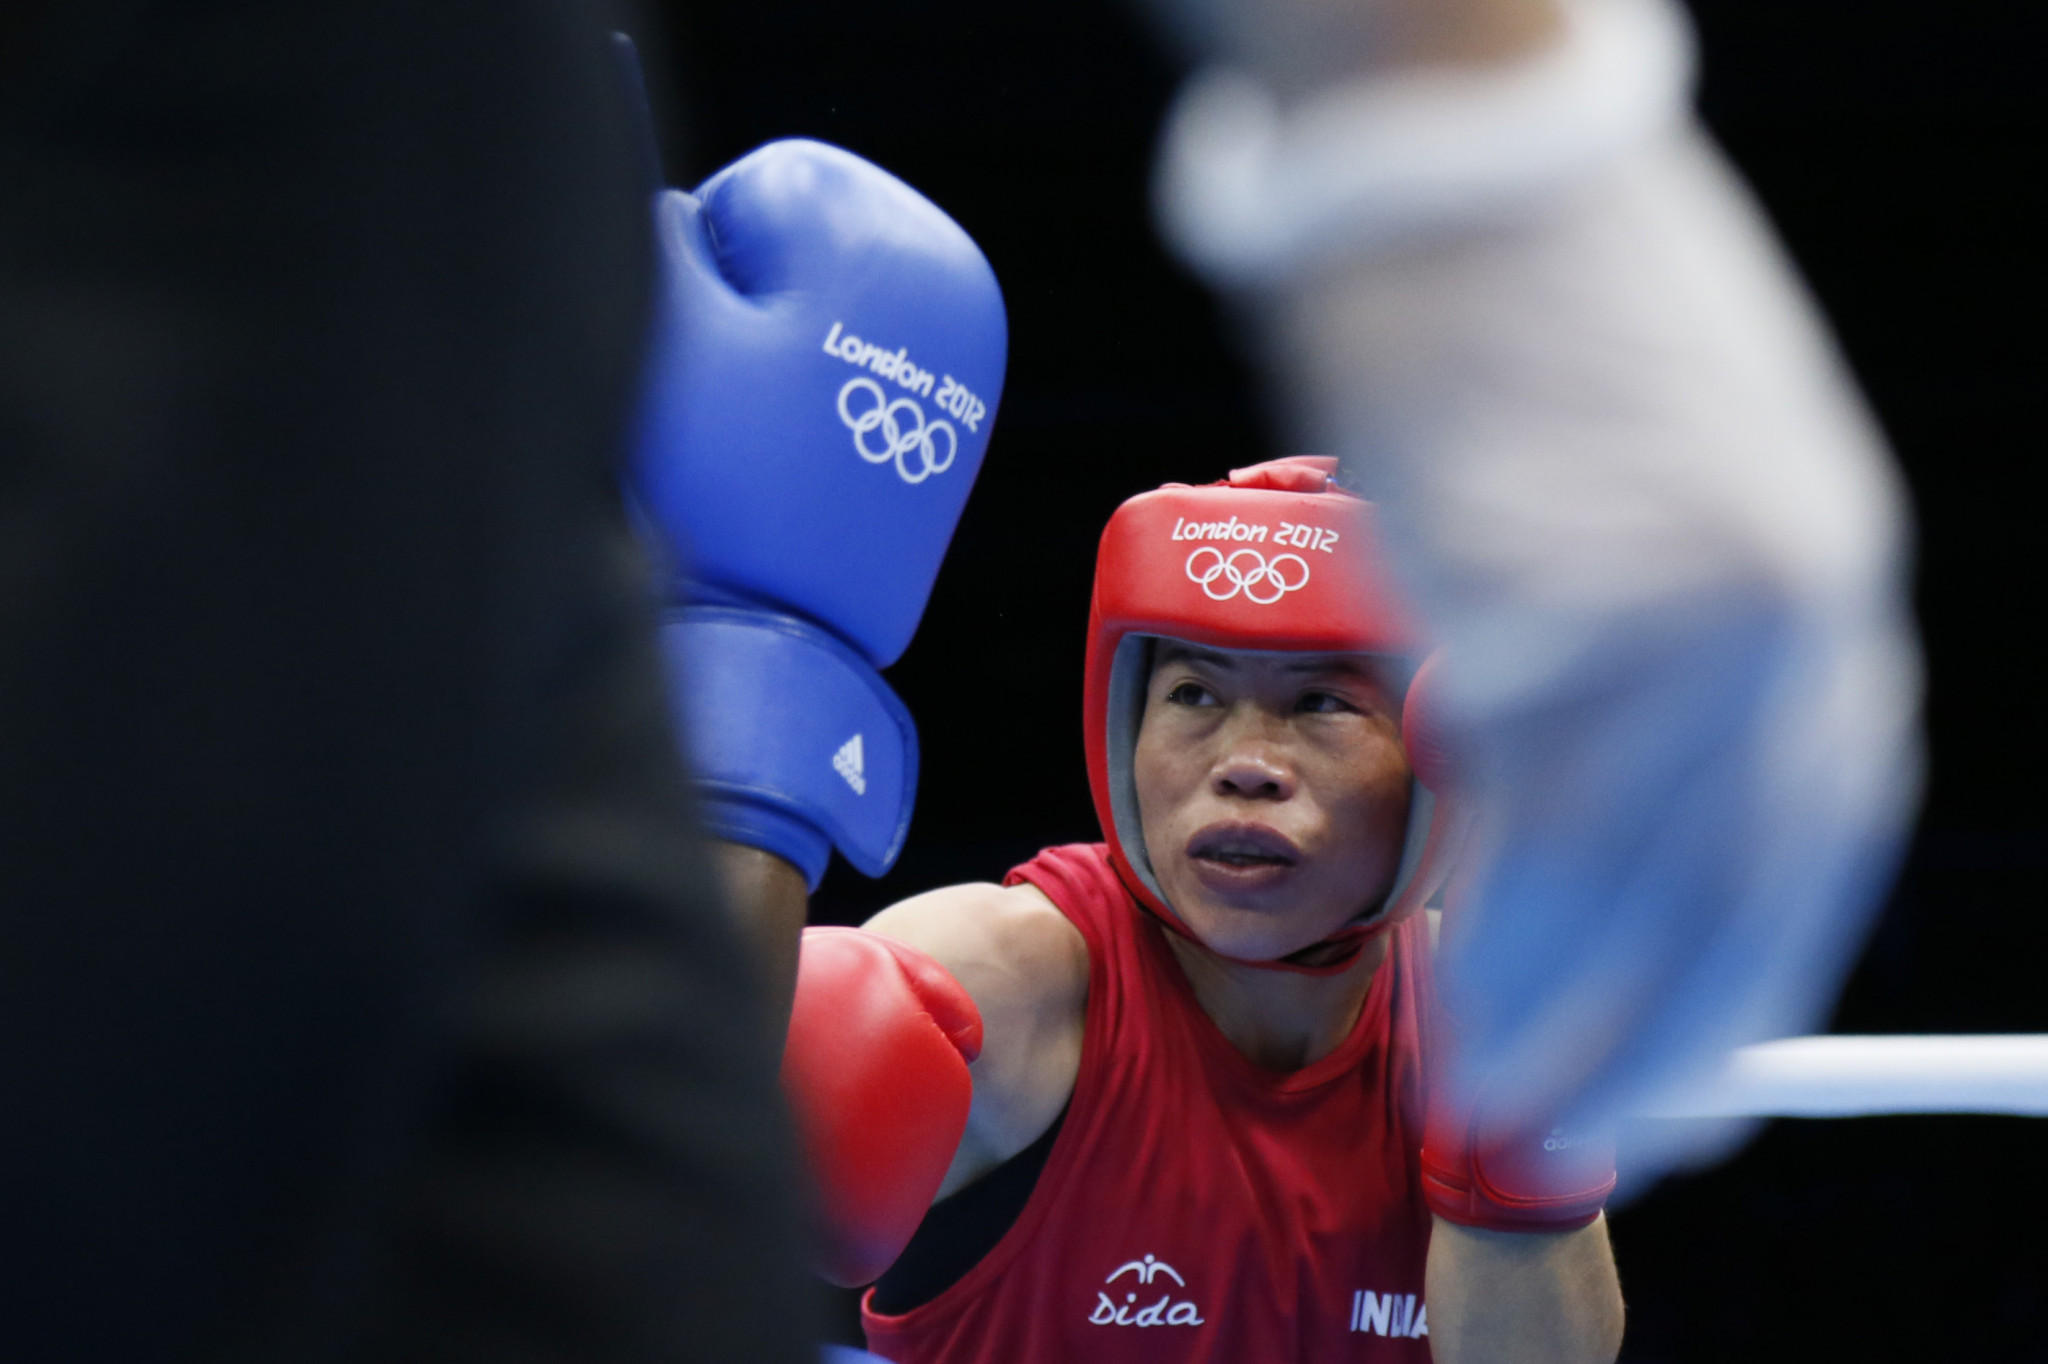 London 2012 bronze medallist and six-time world champion Mary Kom has also qualified for Tokyo 2020 ©Getty Images